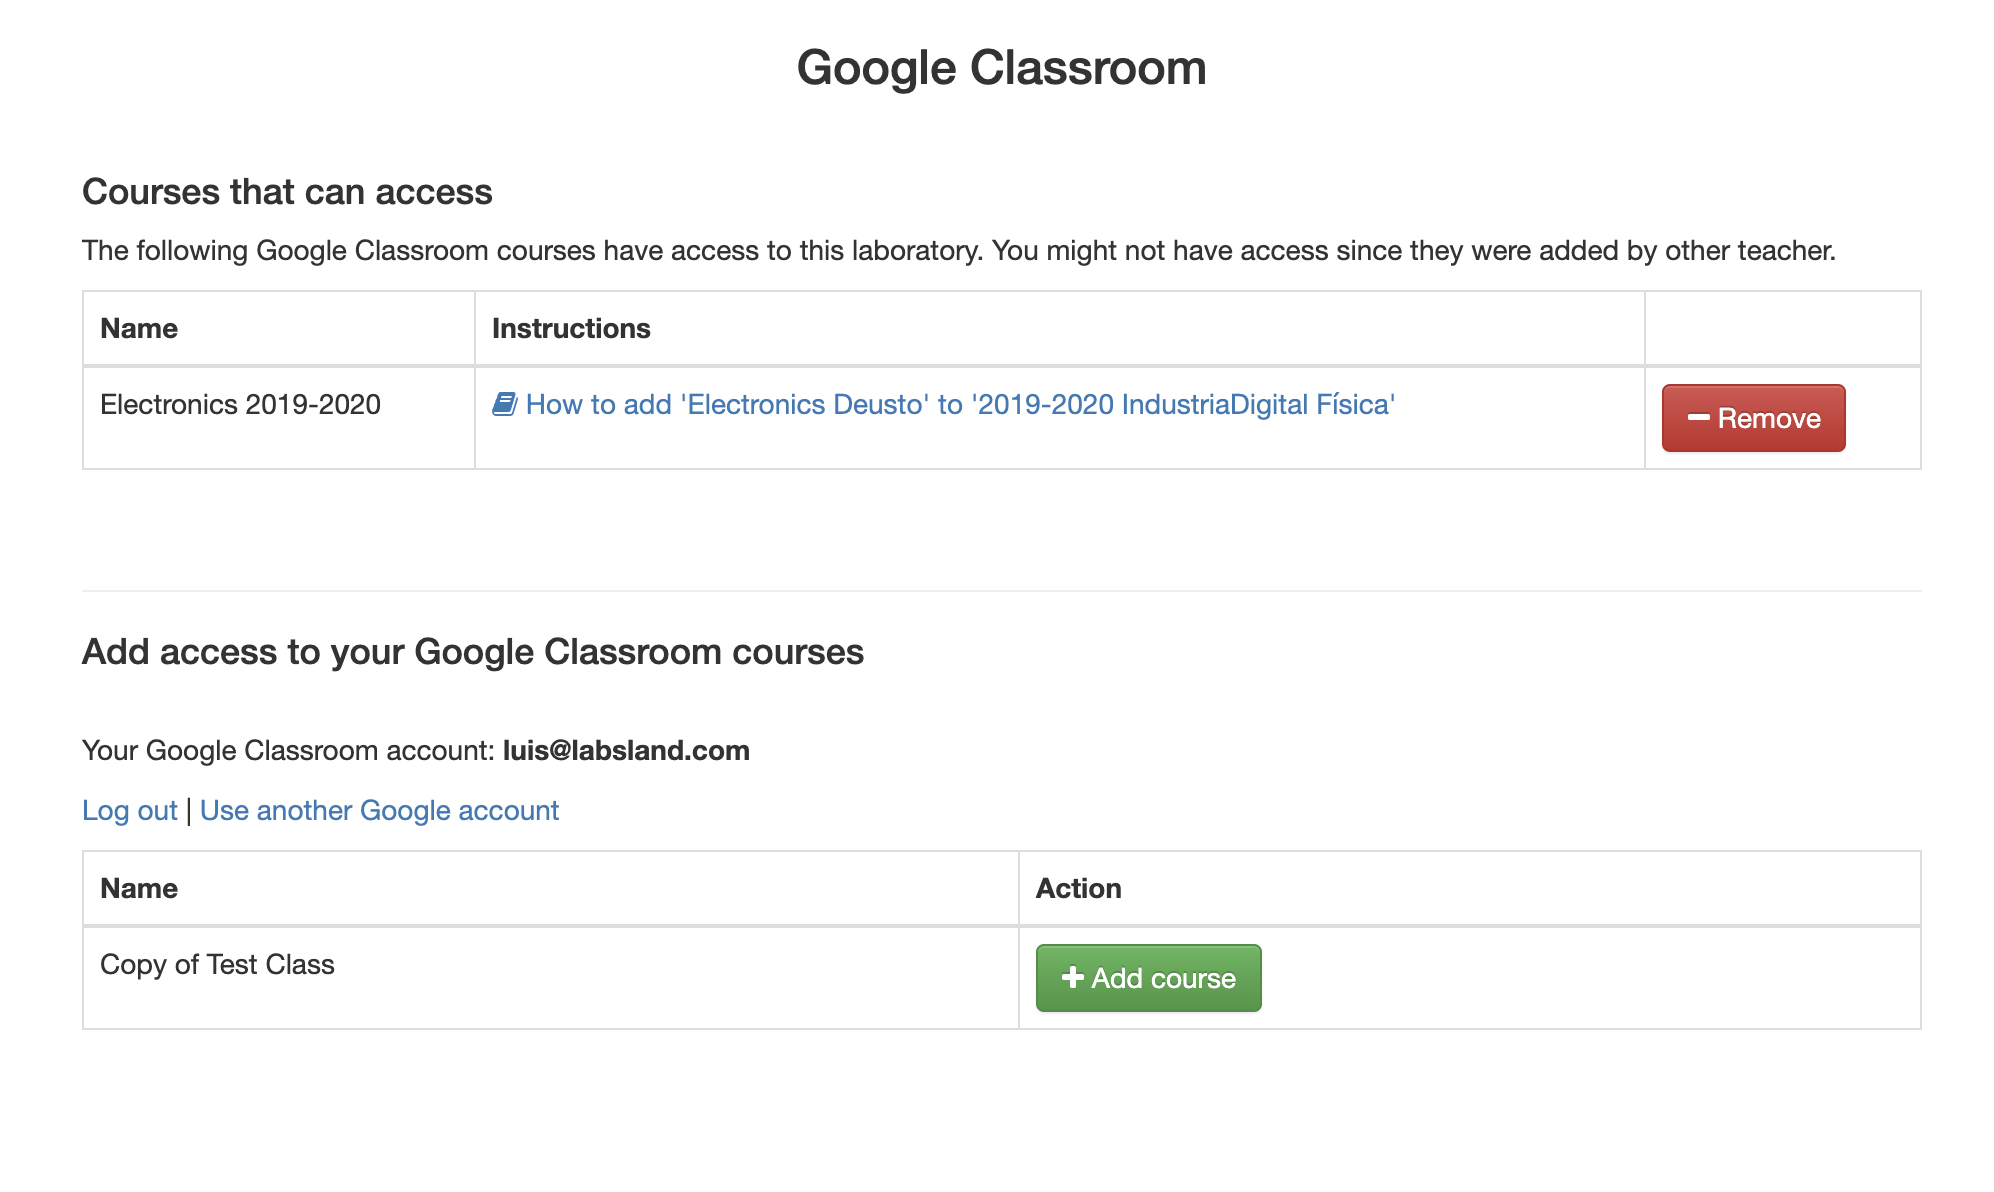 Figure 6. The interface to create Google Classroom links to the labs.